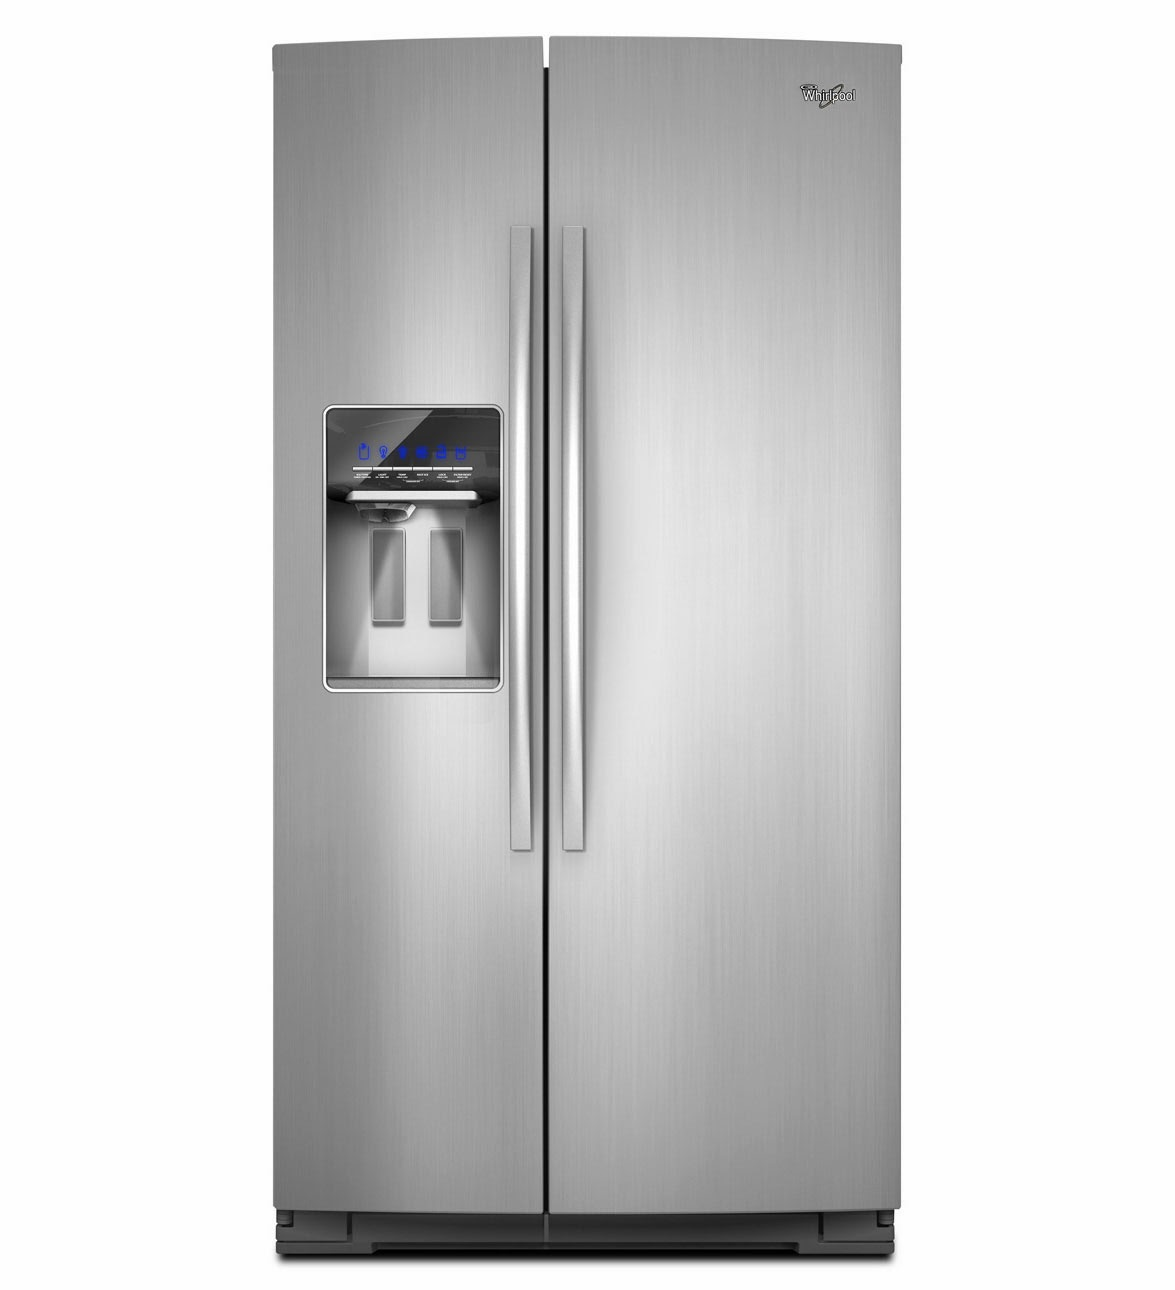 Whirlpool Refrigerator Brand Gsc25c6eyy Side By Side